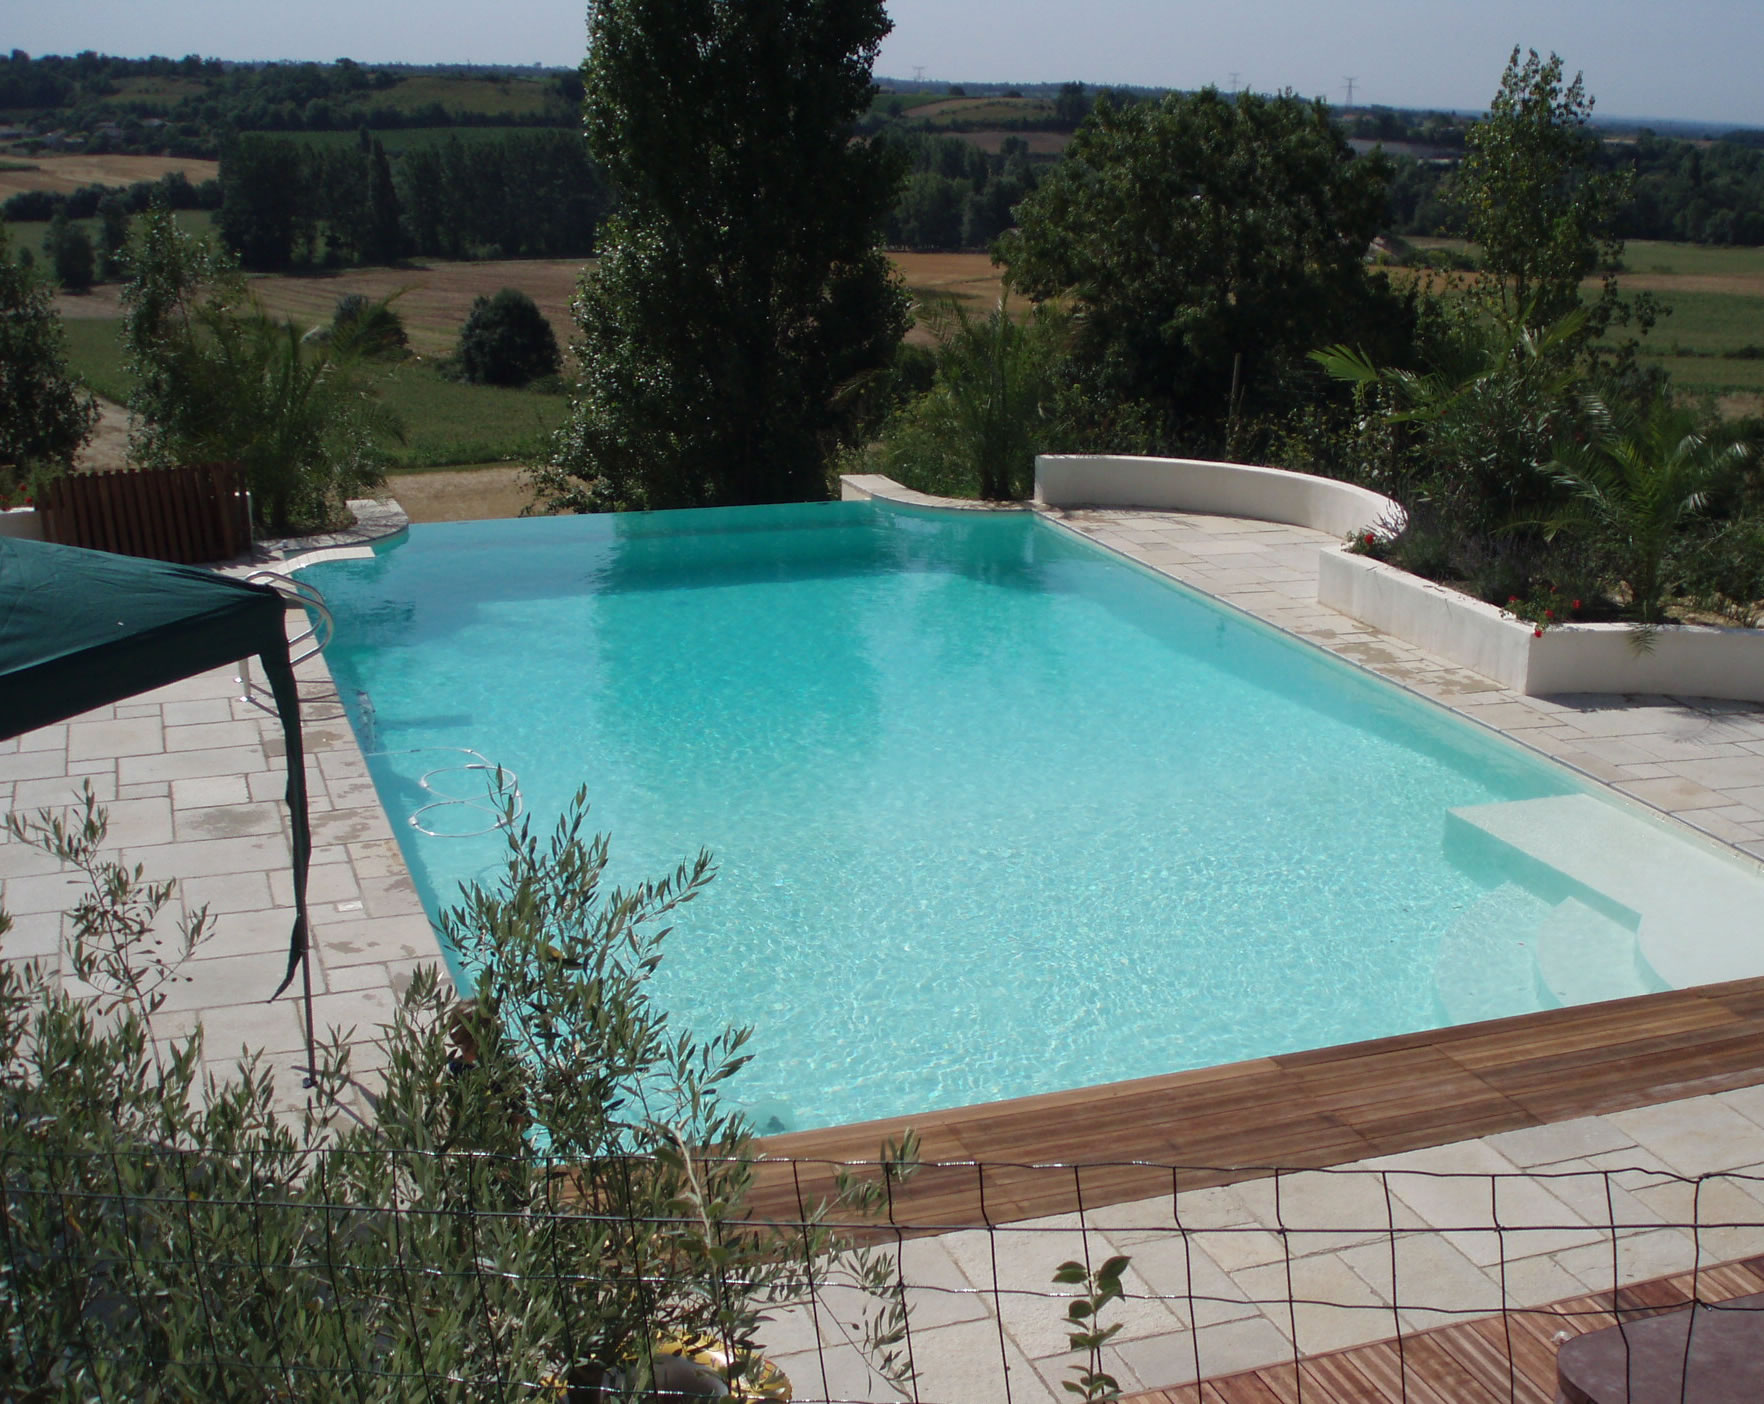 If You Want A New Custom Infinity Edge Swimming Pool Like This At Affordable  Cost .